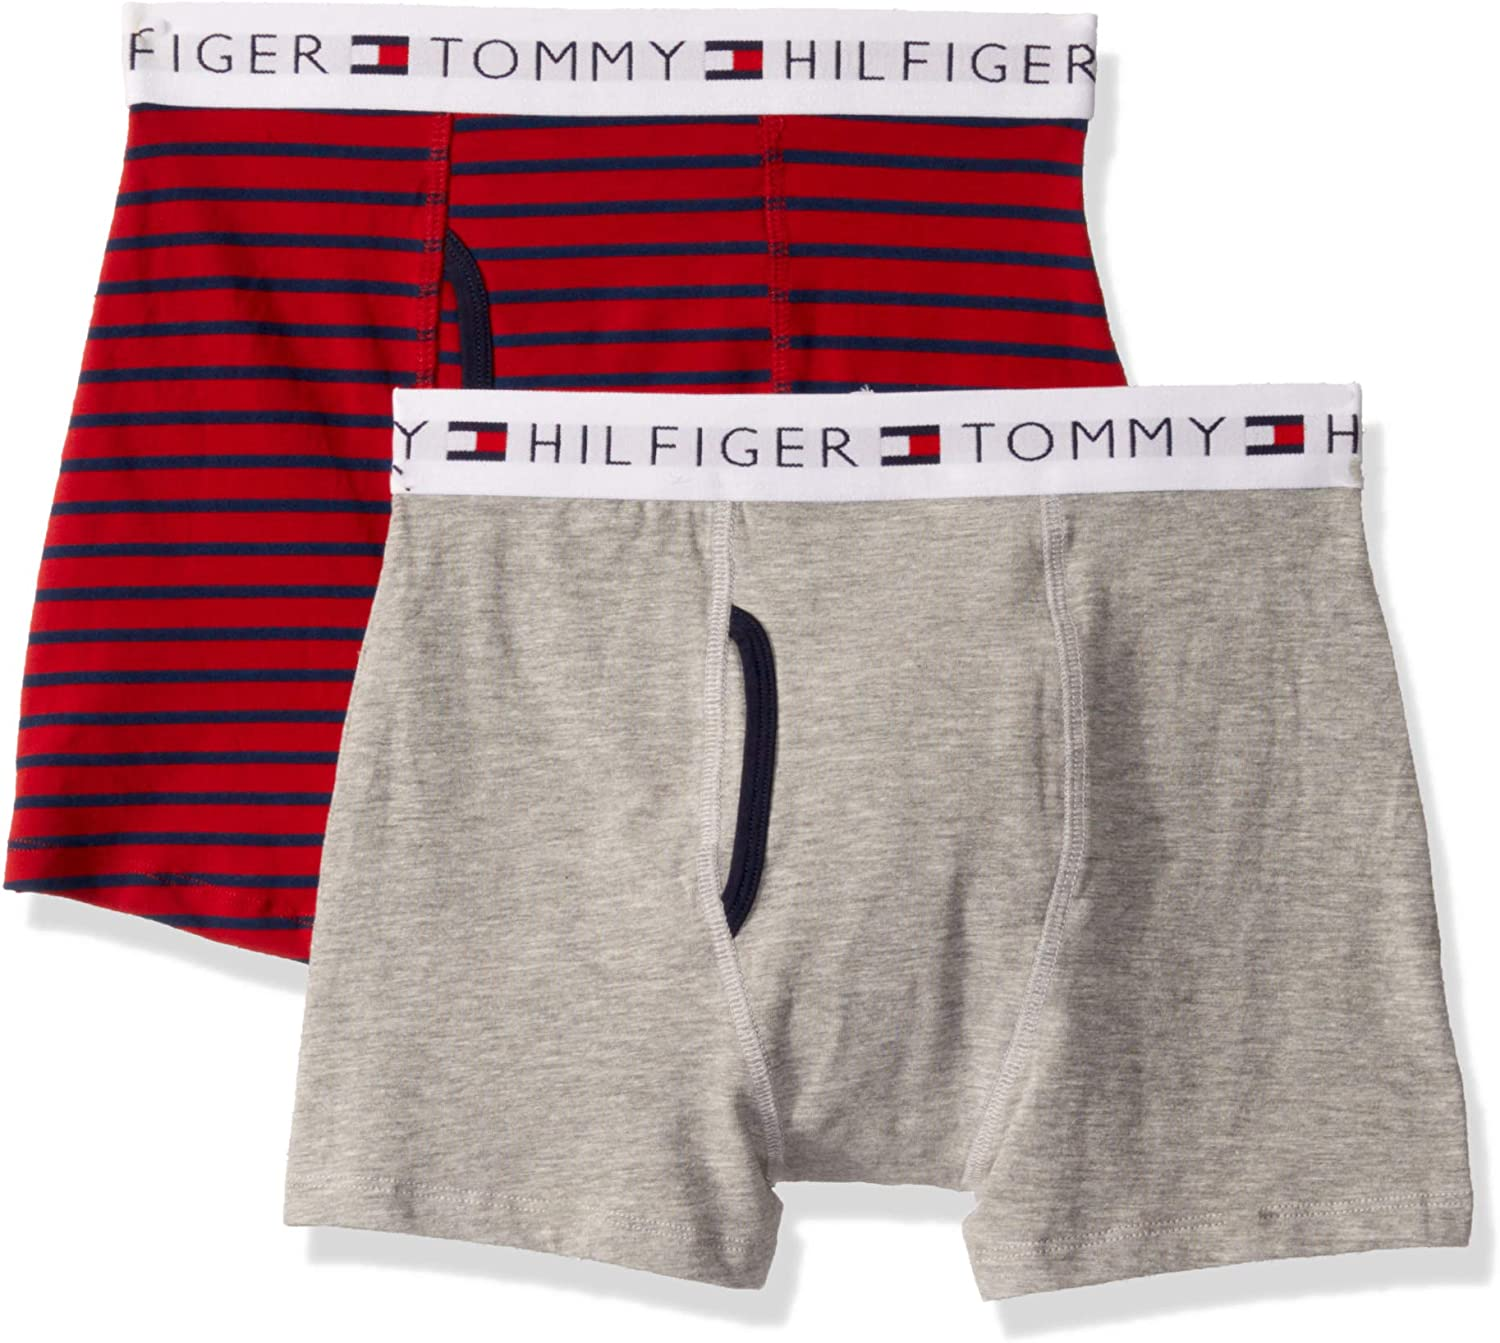 Tommy Hilfiger Boys' Boxer Briefs (Pack of 2)